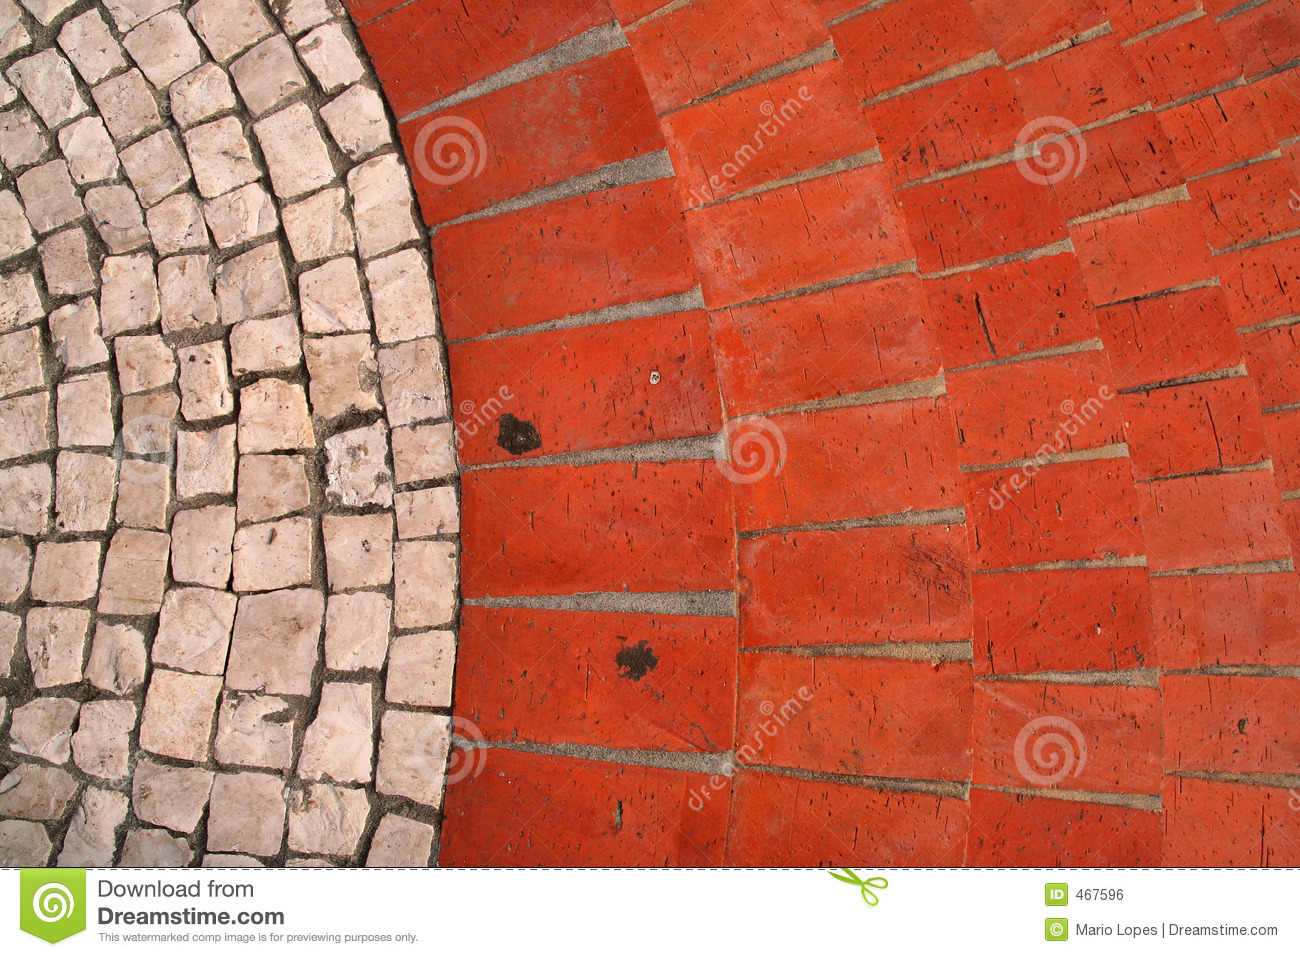 Download Street 1 stock photo. Image of concepts, patterns, shapes - 467596